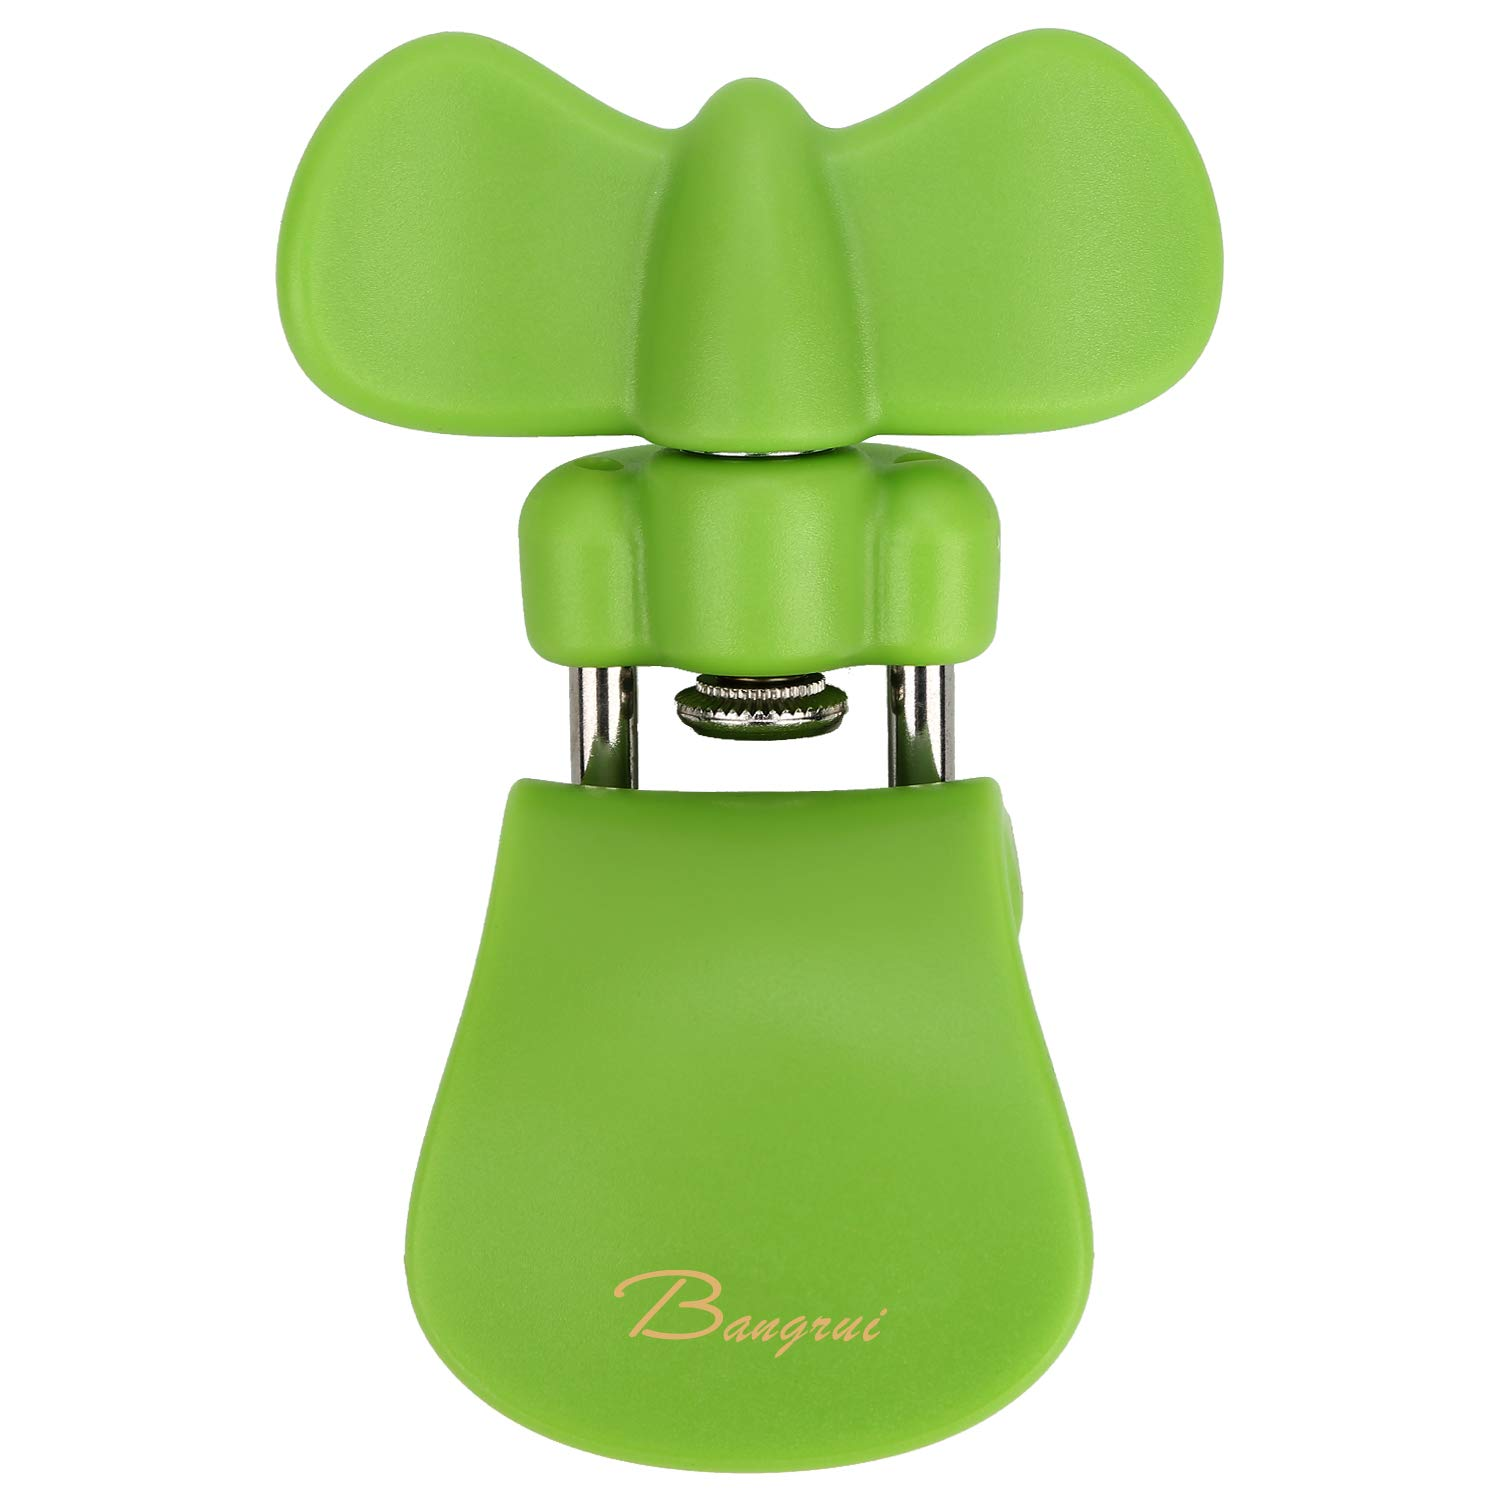 Home Kitchen Restaurant Safety Bottle Jar Manual Can Opener&Bangrui Professional 3-in-1 Can Opener.Smooth and Neat Edge Can Opener. Delicate Exterior. Best for the Left-handed and Outdoor-goers(Green) by BangRui